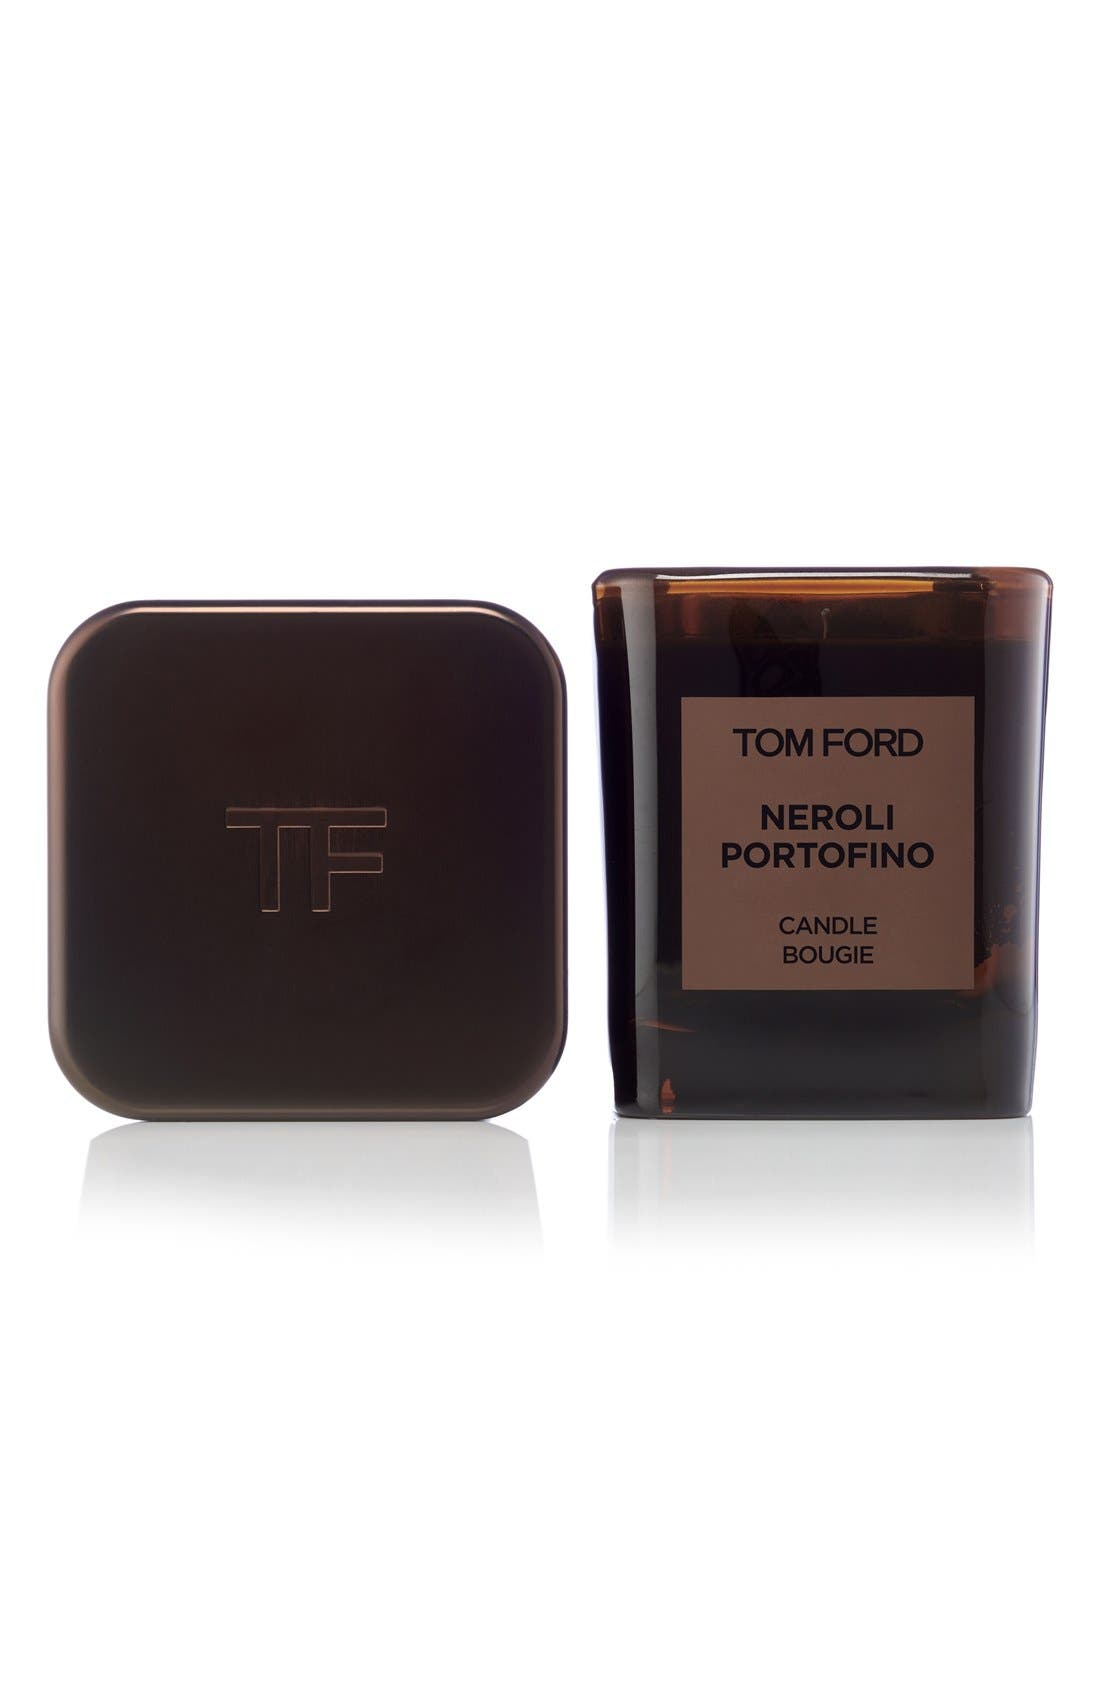 Tom Ford Private Blend Neroli Portofino Candle